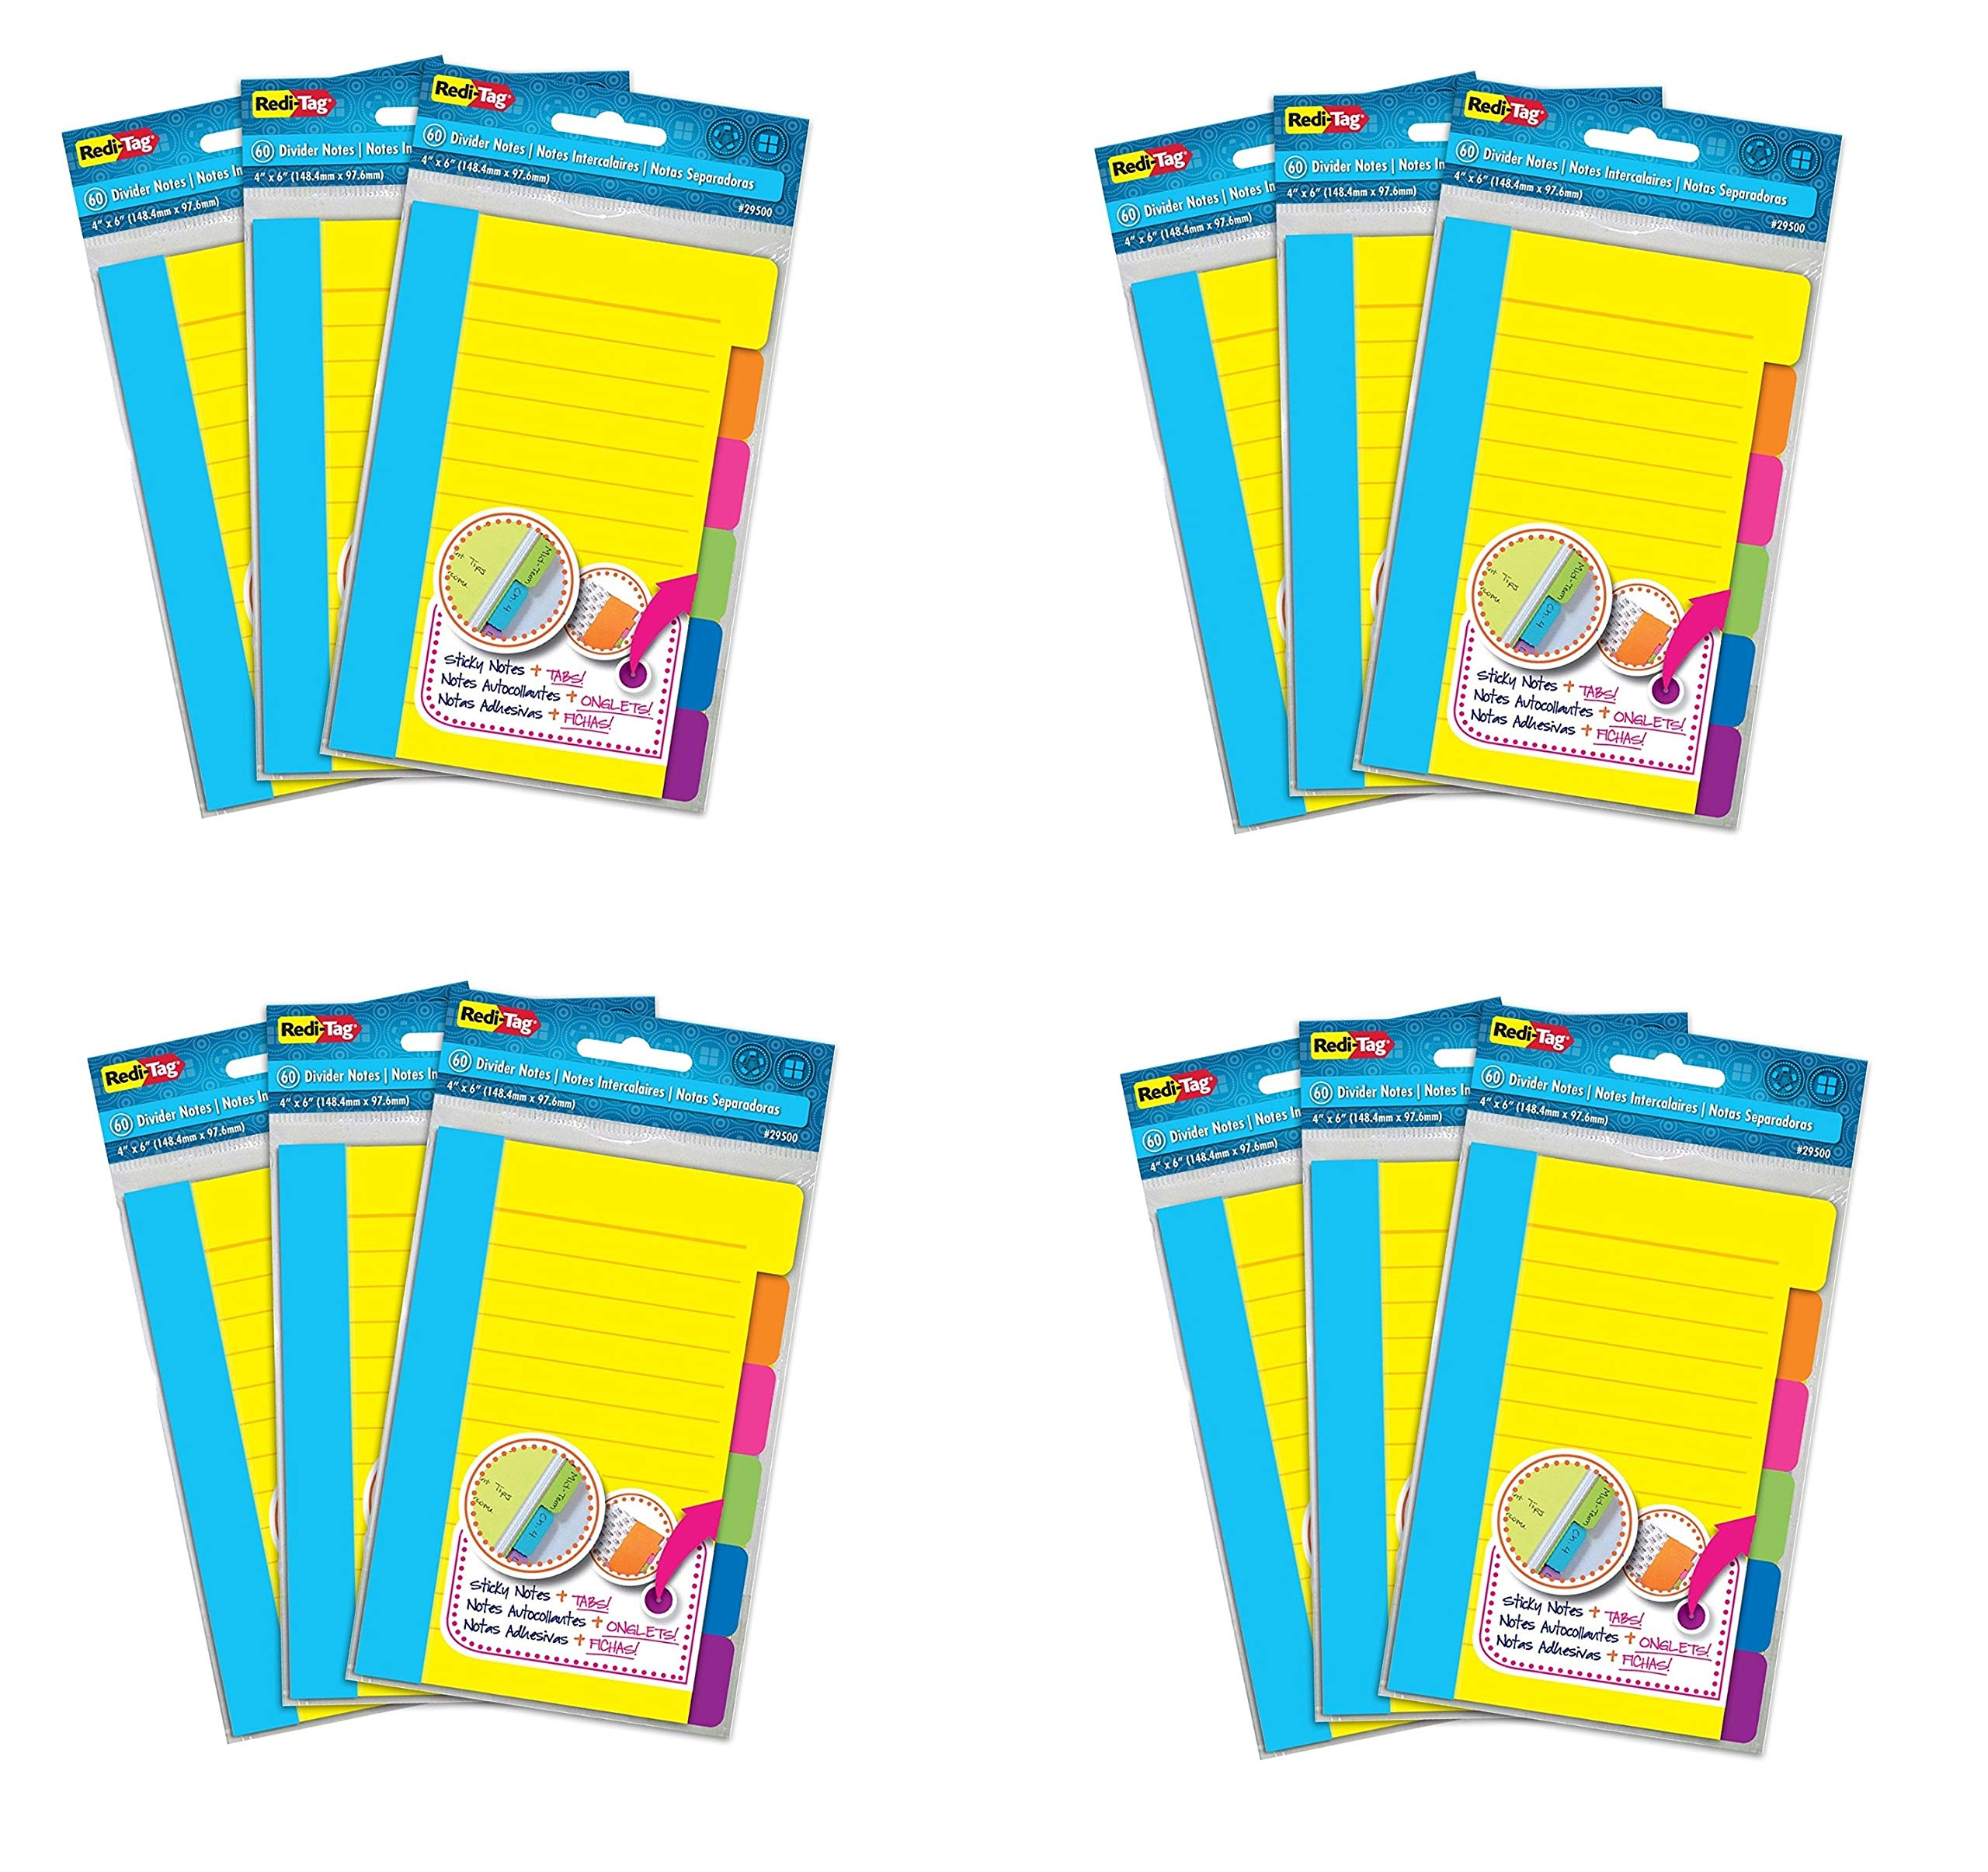 Redi-Tag Divider Sticky Notes, 60 Ruled Notes per Pack, 4'' x 6'', Assorted Neon Colors, Sold as 12 Pack